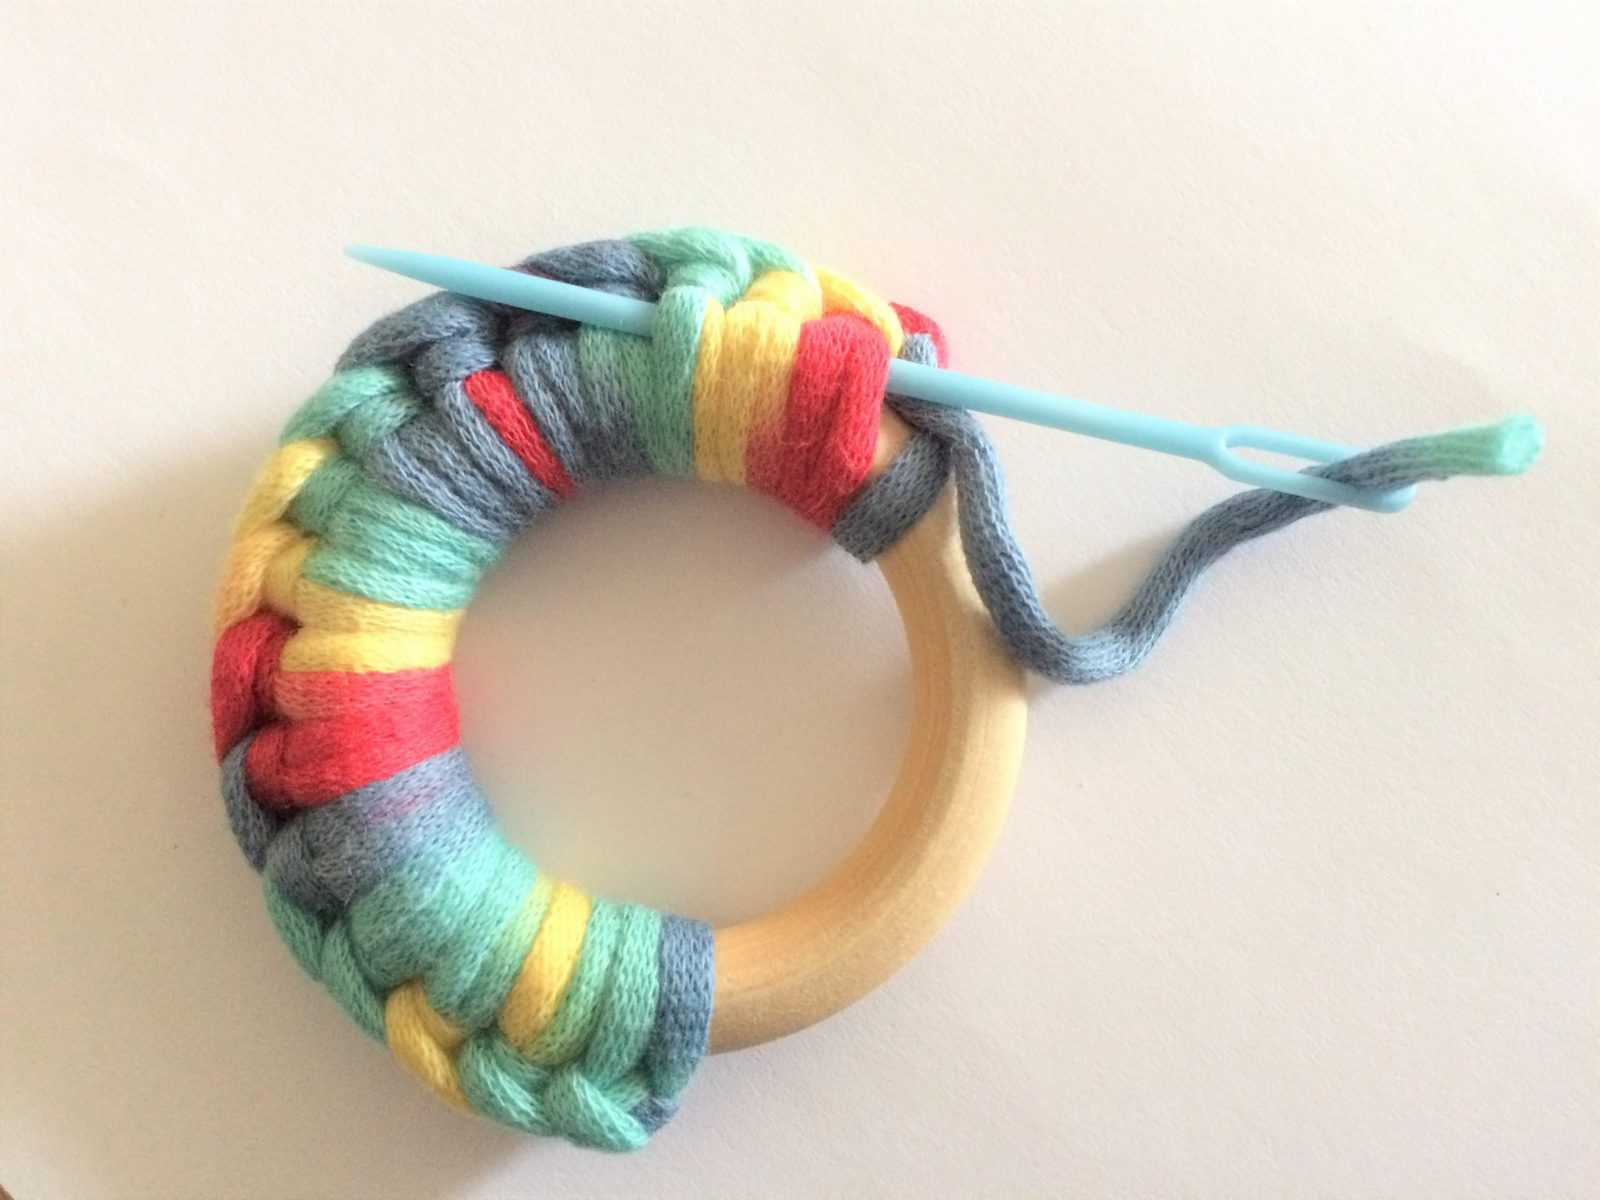 Sewing tail into crochet teether.